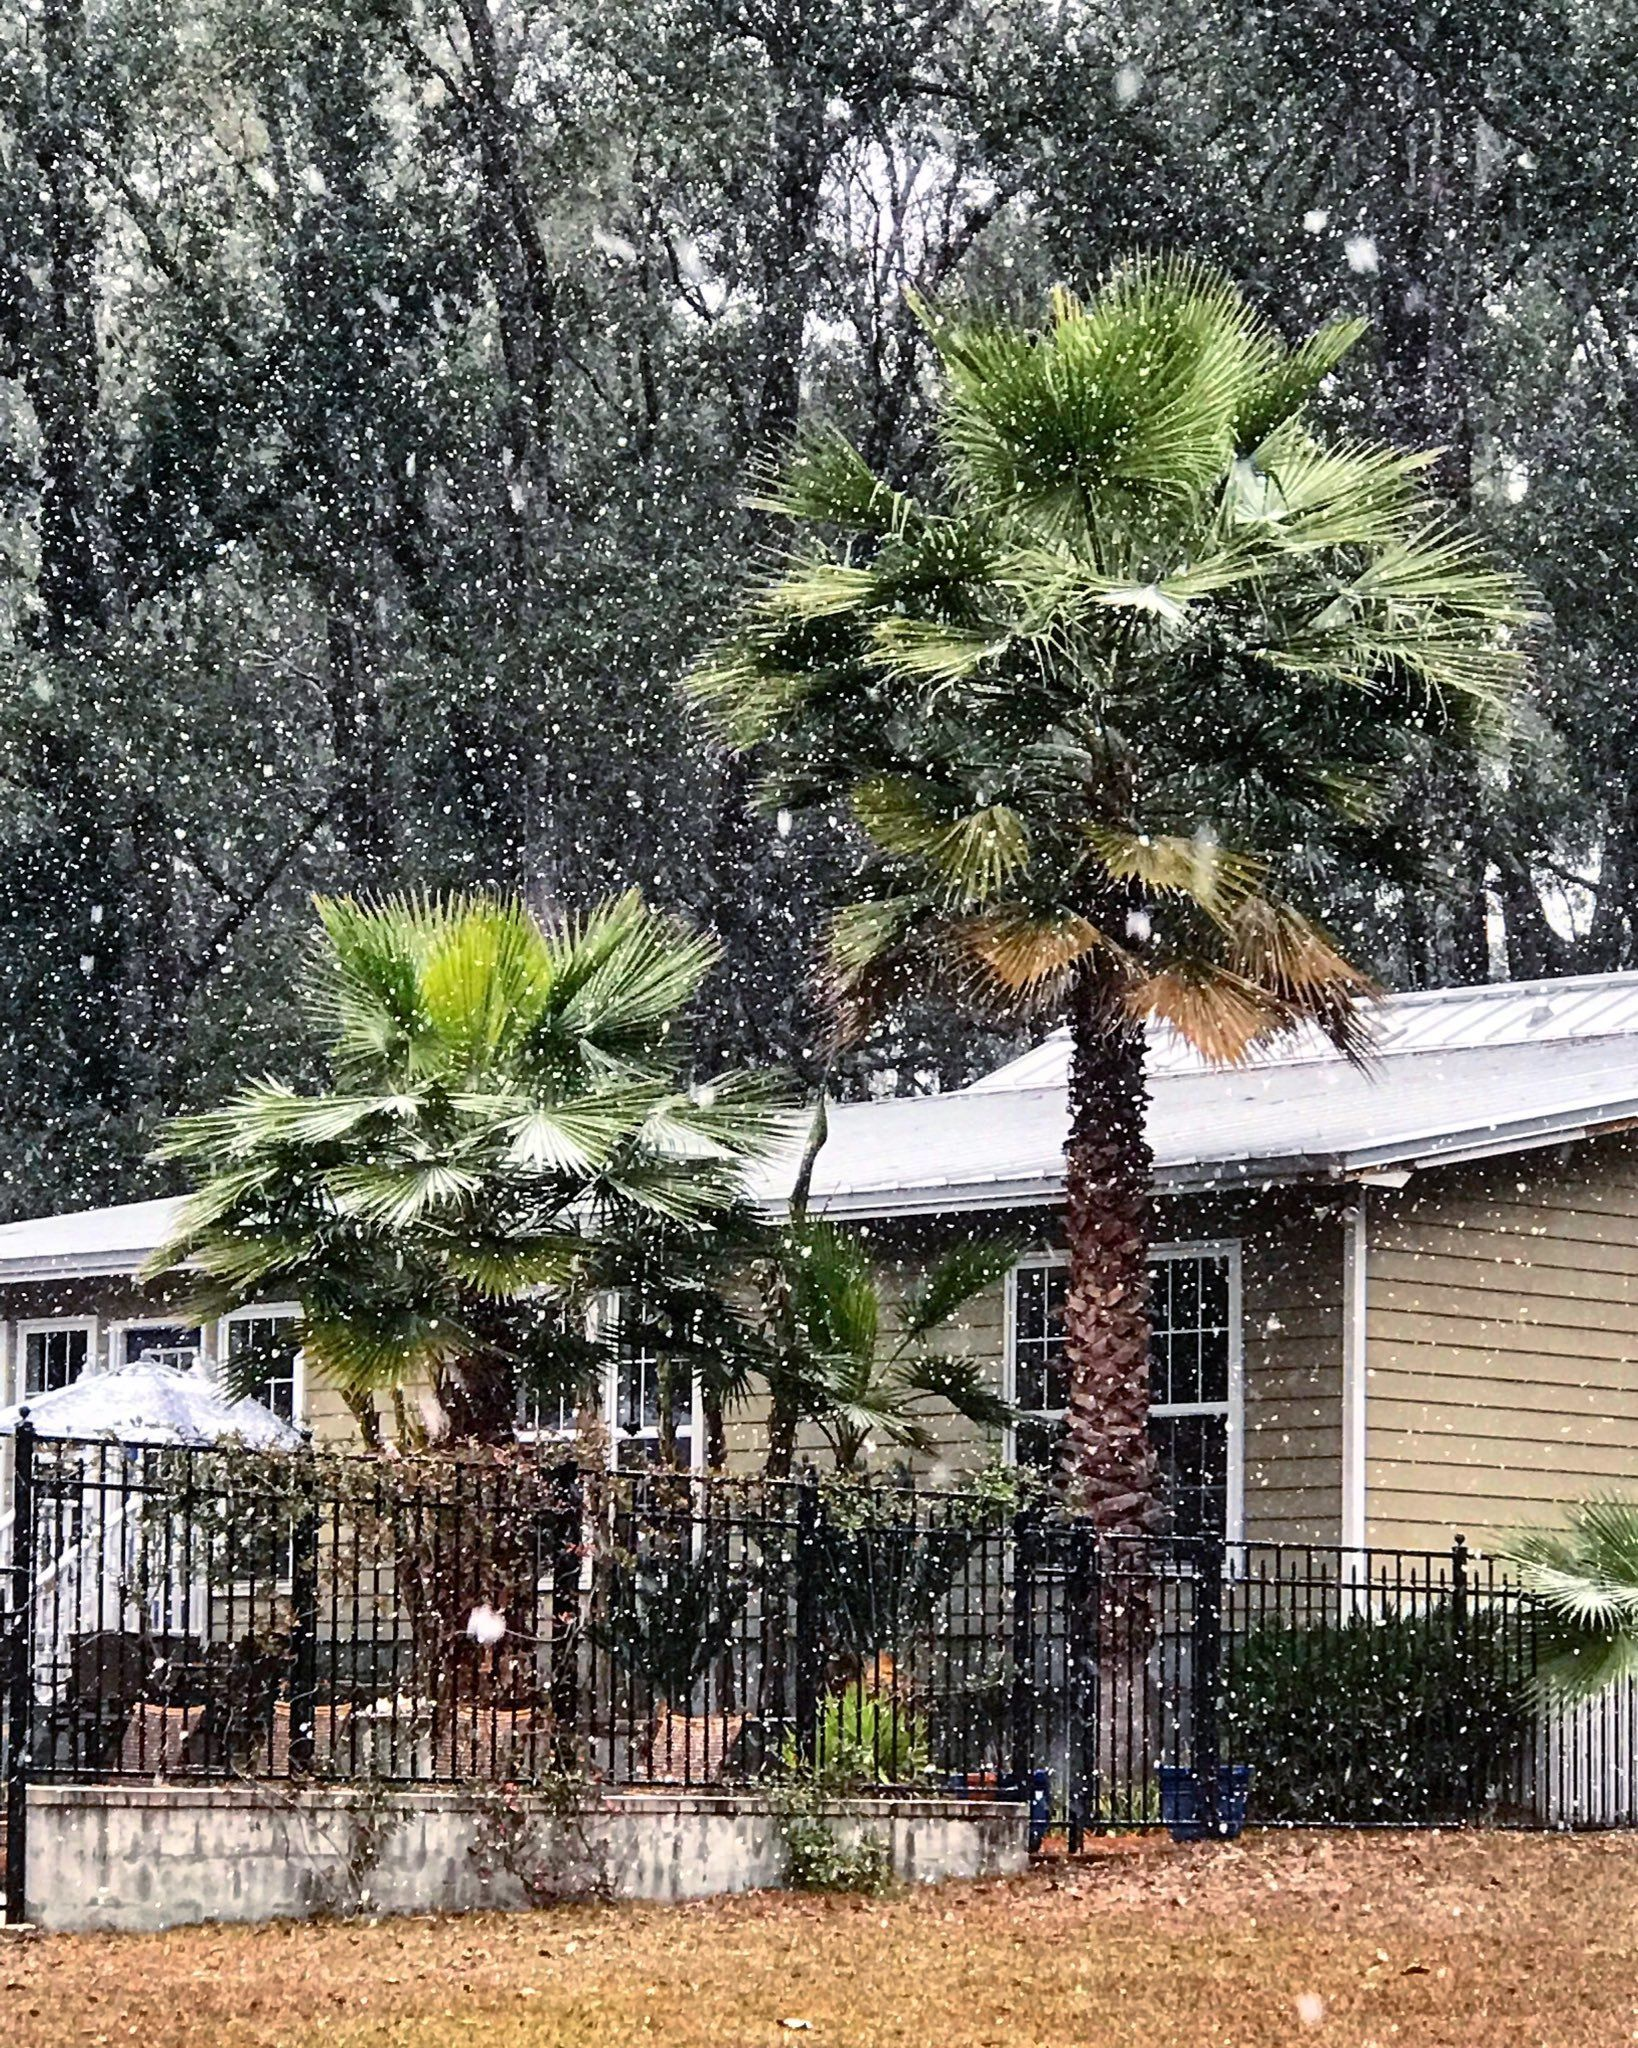 Snowfall covers Tallahassee as Florida hit by winter storm